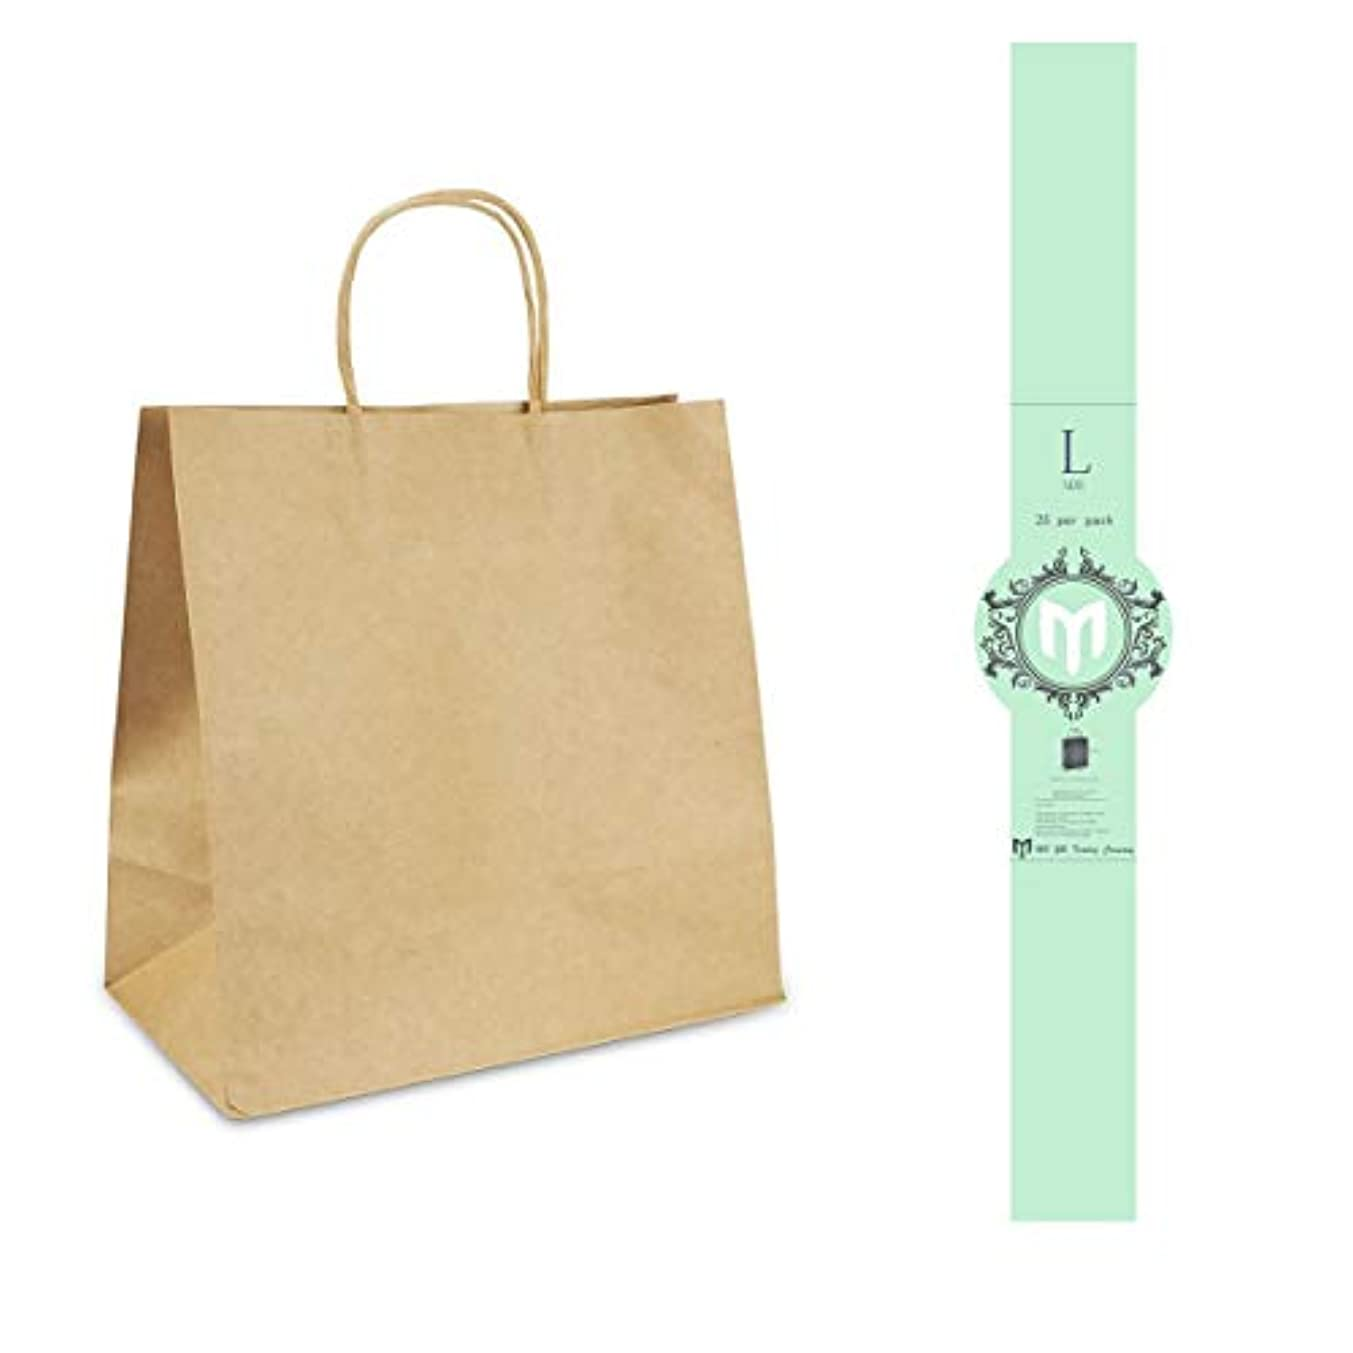 11x11x5.9'' Kraft Paper Bags 25,50,100 Pack Recycling FSC Certified for Lunch,Bread,Shopping Bag with Handle (25, Large)